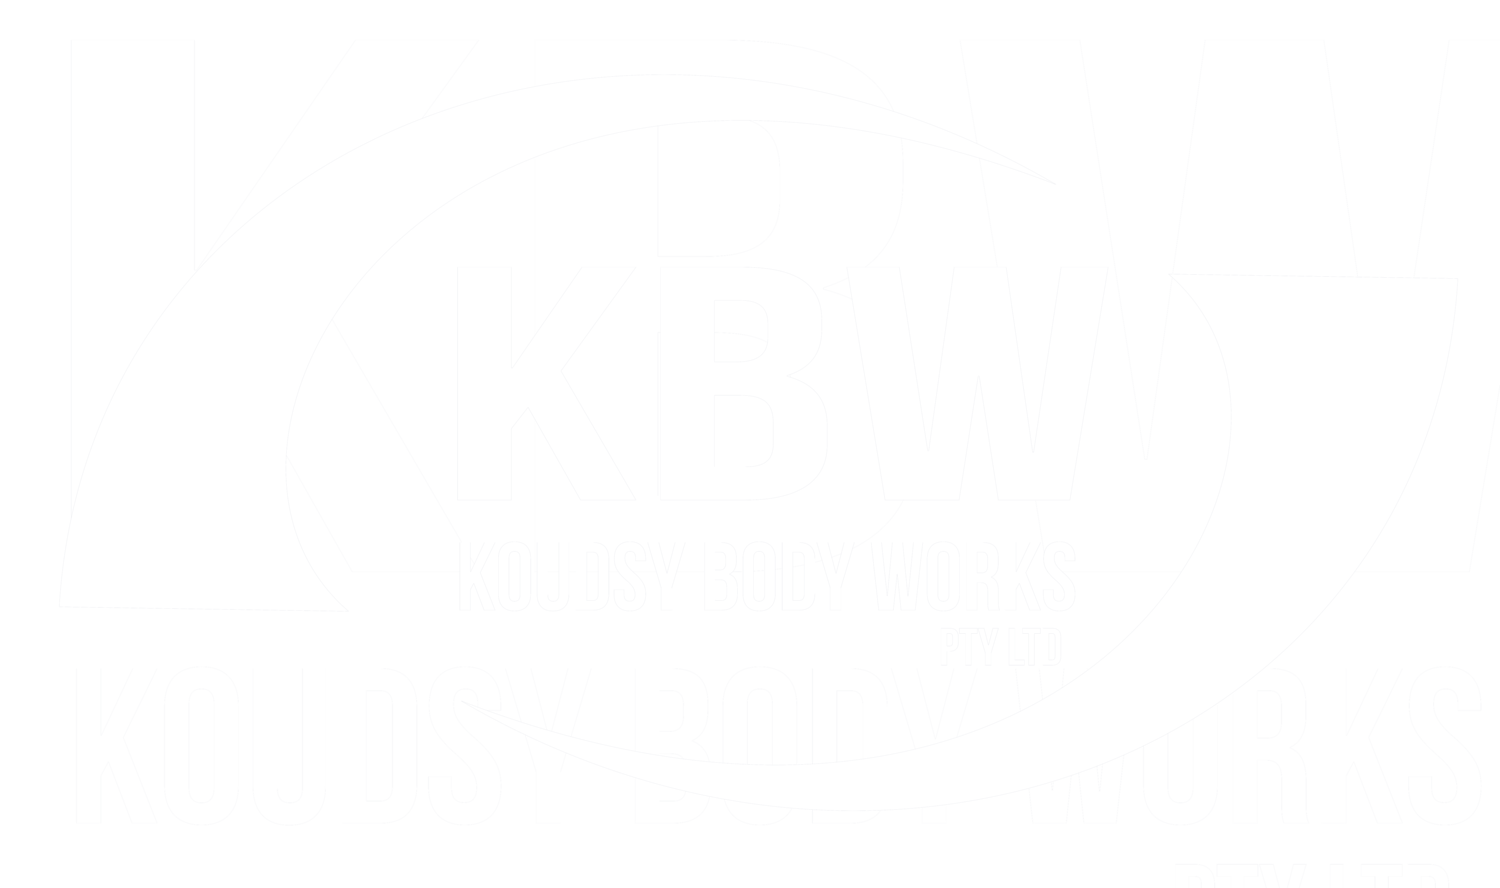 Koudsy Body Works